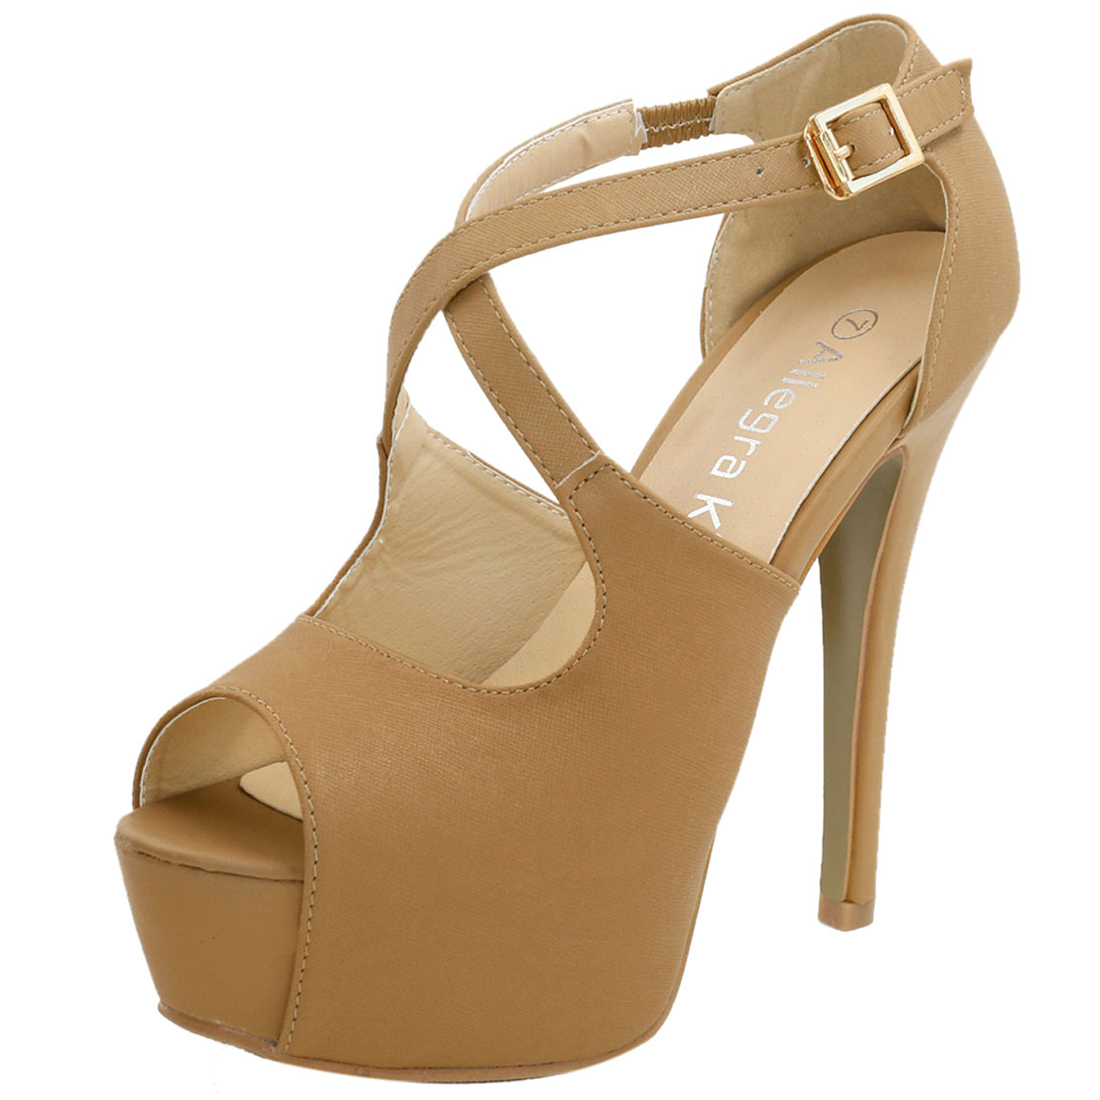 Woman Peep Toe High Heel Crisscross Straps Platform Sandals Tan US 8.5